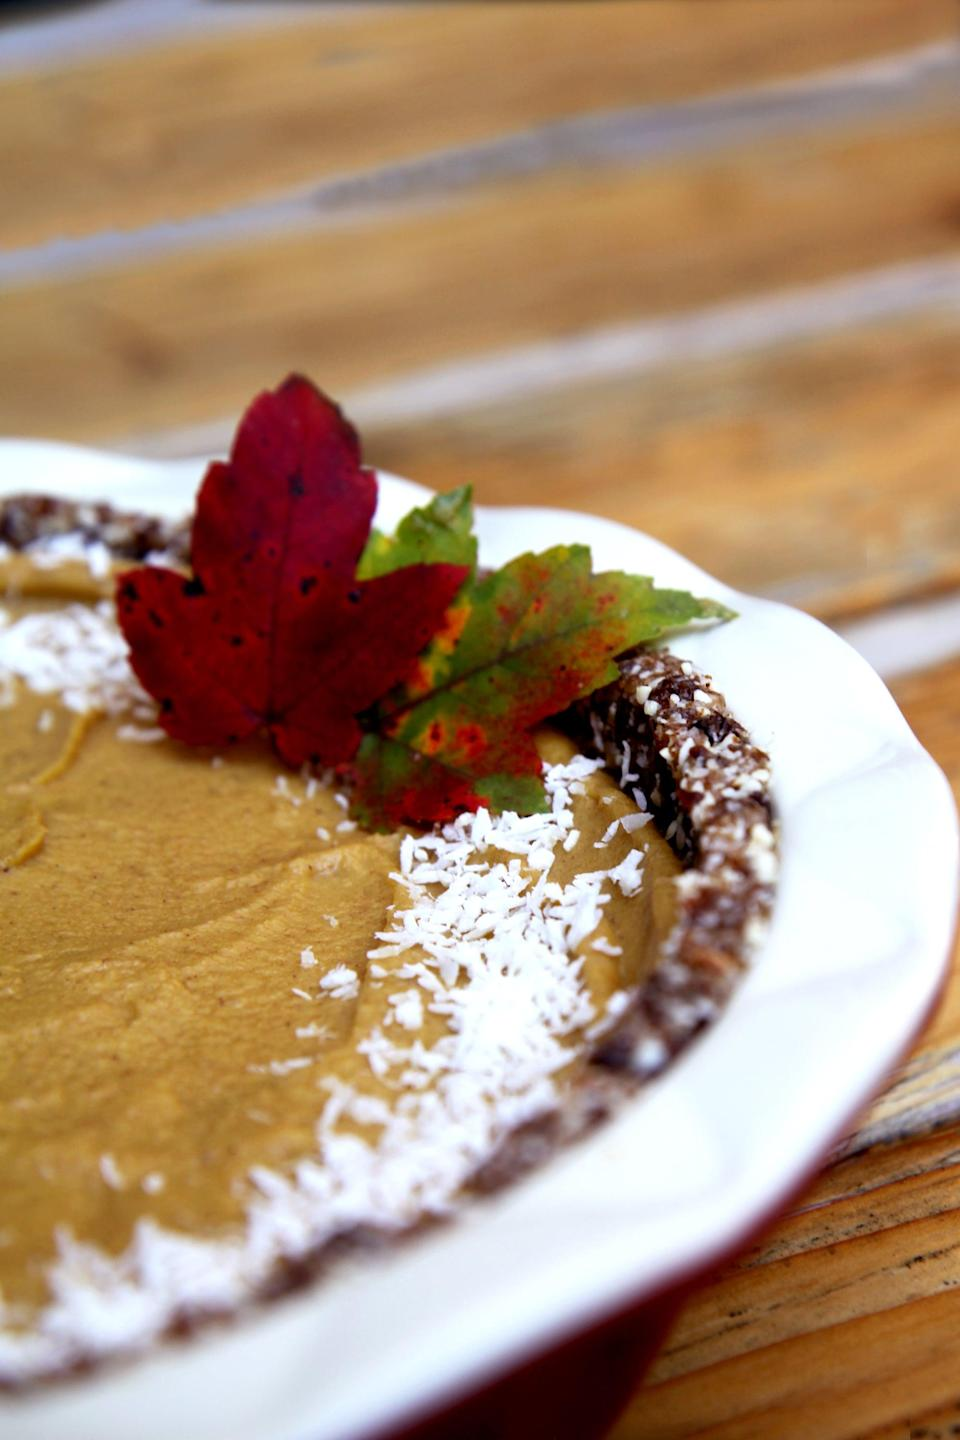 """<p>This pumpkin pie is raw, vegan, and gluten-free - a win for everyone at the table! With oven space at a premium, you'll love that you don't need to turn yours on for this one.</p> <p><b>Get the recipe</b>: <a href=""""https://www.popsugar.com/fitness/Raw-Vegan-Pumpkin-Pie-Recipe-31964523"""" class=""""link rapid-noclick-resp"""" rel=""""nofollow noopener"""" target=""""_blank"""" data-ylk=""""slk:pumpkin pie is raw, vegan, and gluten-free"""">pumpkin pie is raw, vegan, and gluten-free</a></p>"""